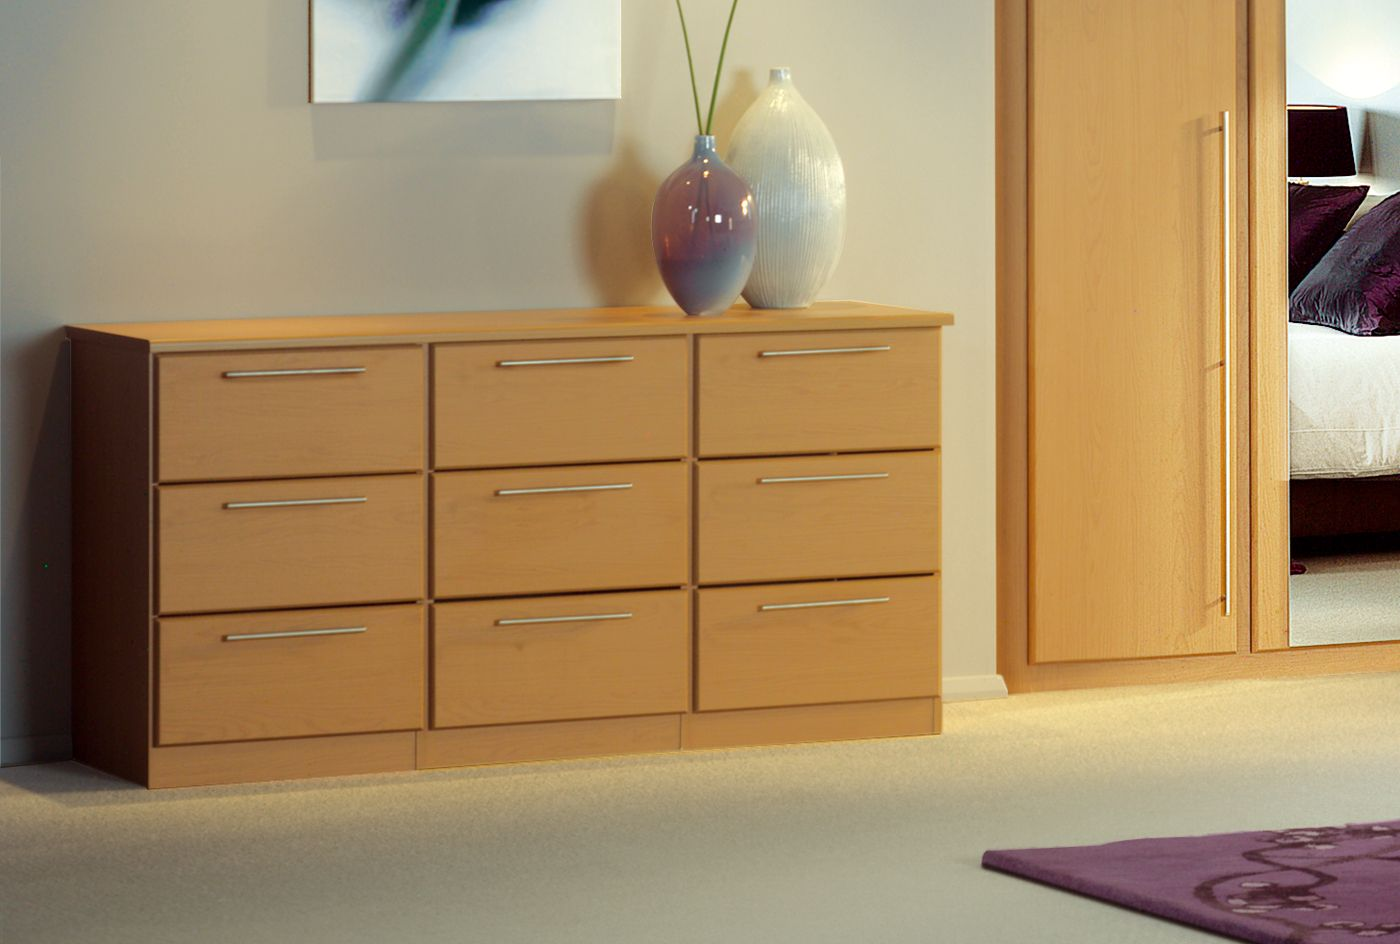 malmo bedroom furniture and wardrobes in maple by sharps. Black Bedroom Furniture Sets. Home Design Ideas